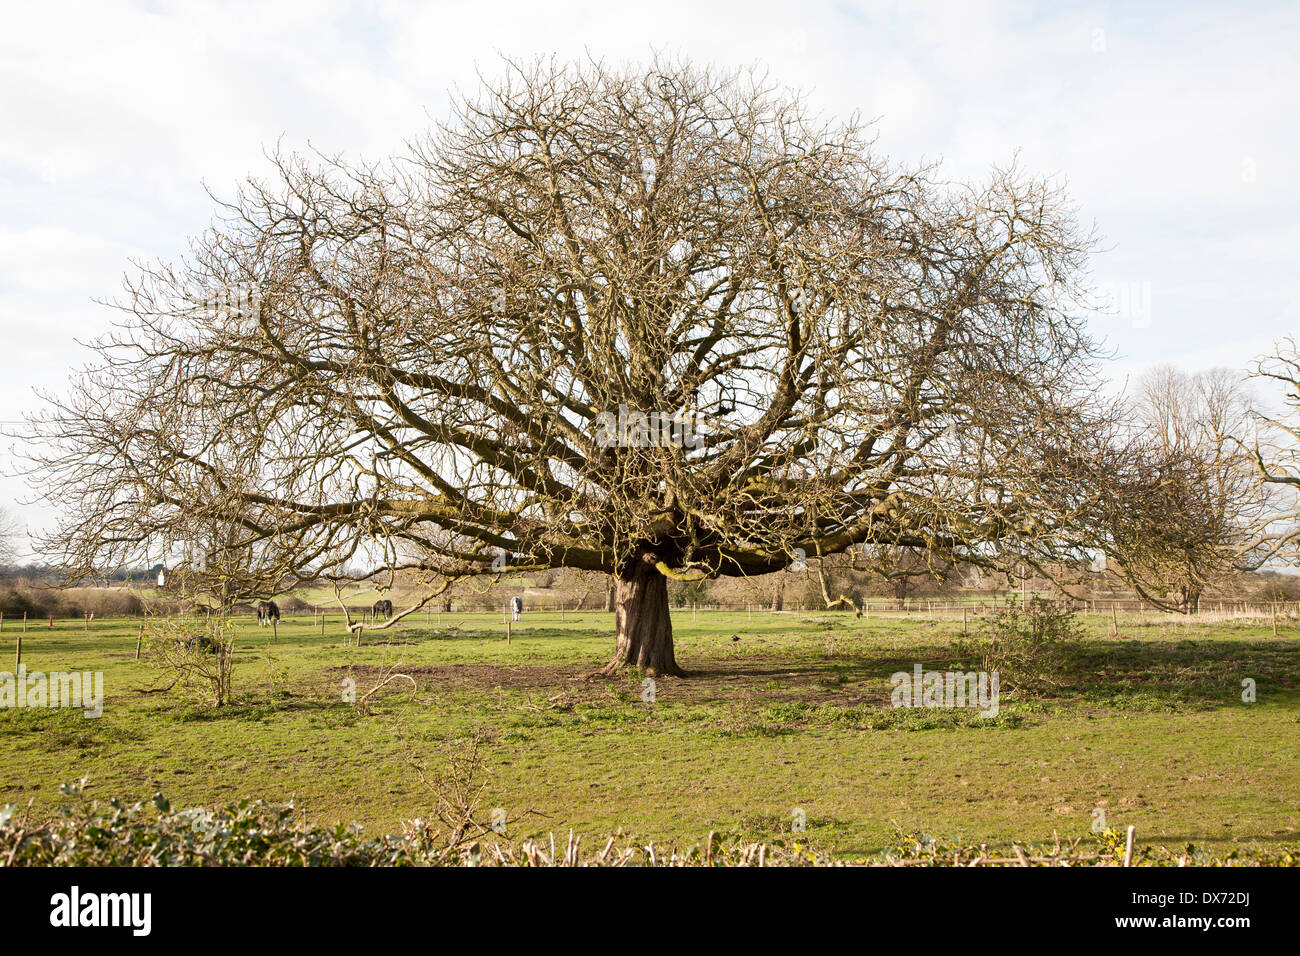 Horse chestnut tree, Aesculus hippocastanum, in winter growing in field, Sutton, Suffolk, England Stock Photo